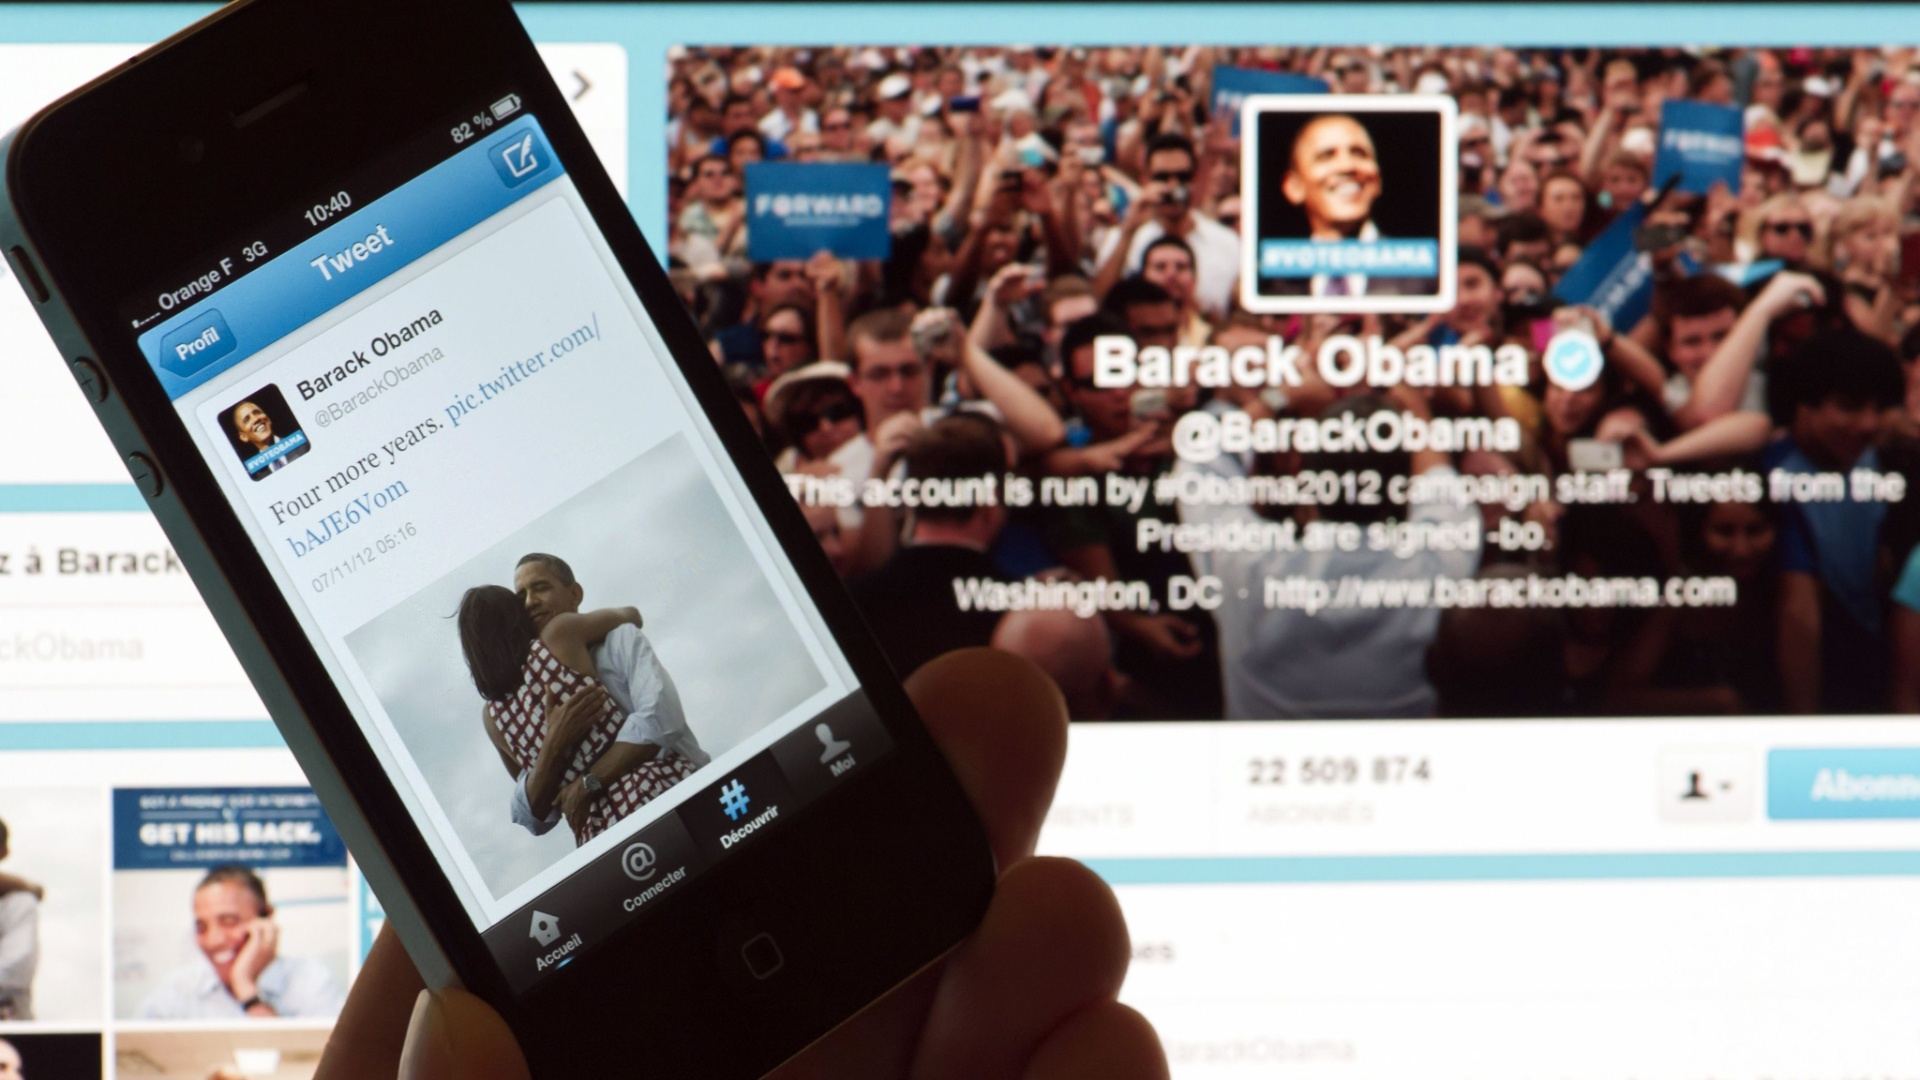 7.nov.2012 - Pessoa exibe  smartphone com o tute de Barack Obama que, segundo a rede social, foi a mensagem mais compartilhada no site. A postagem, que diz 